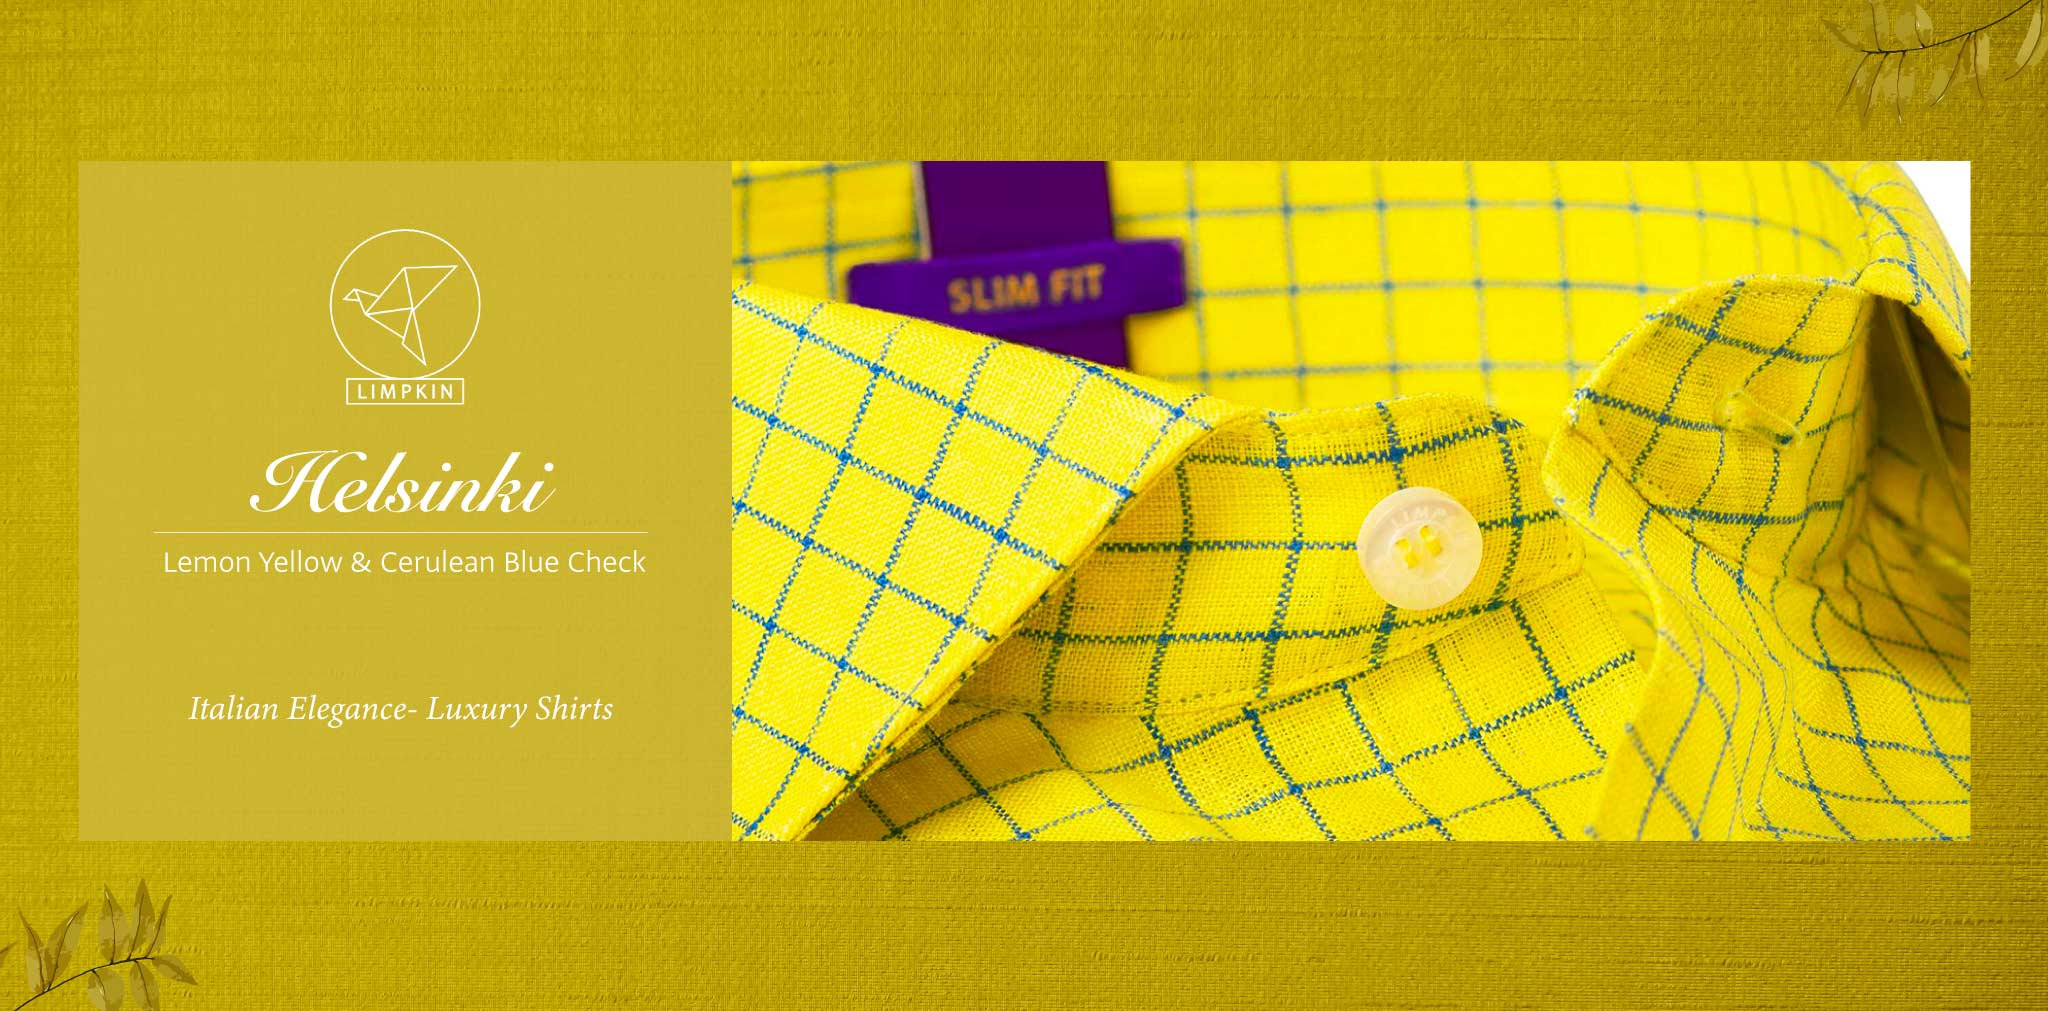 Helsinki- Lemon Yellow & Cerulean Blue Check- 66's Lea Pure Luxury Linen- Delivery from 4th August - Banner